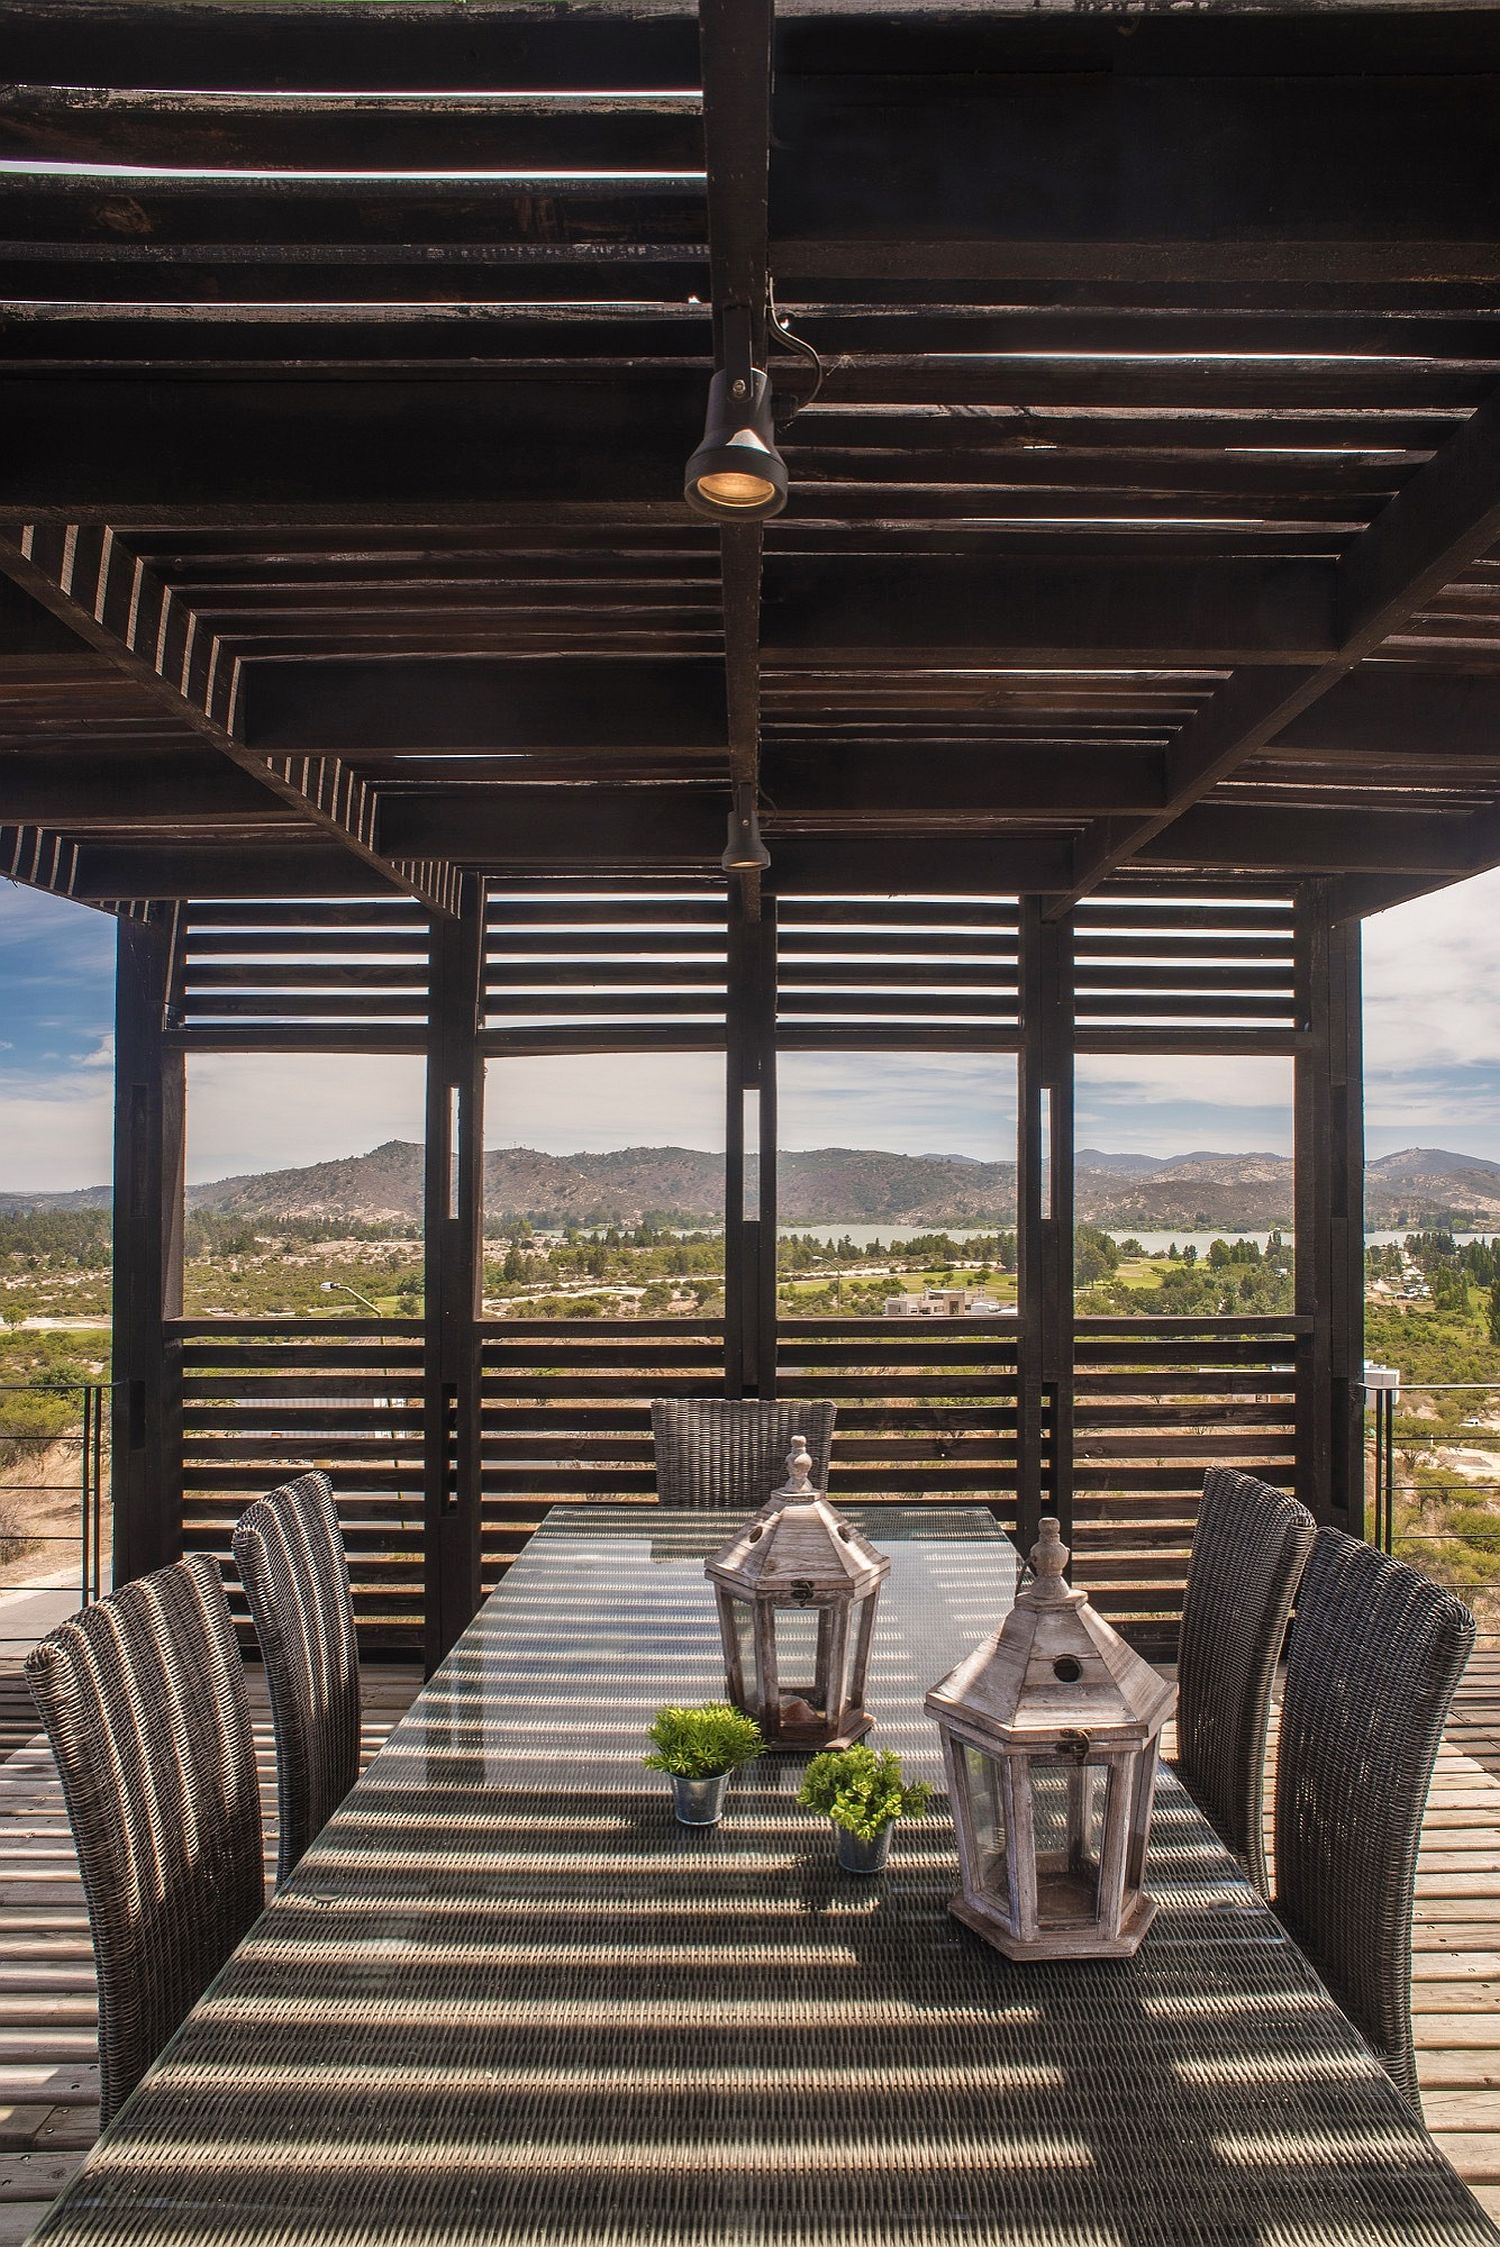 Wooden slats offer shade for the outdoor dining space